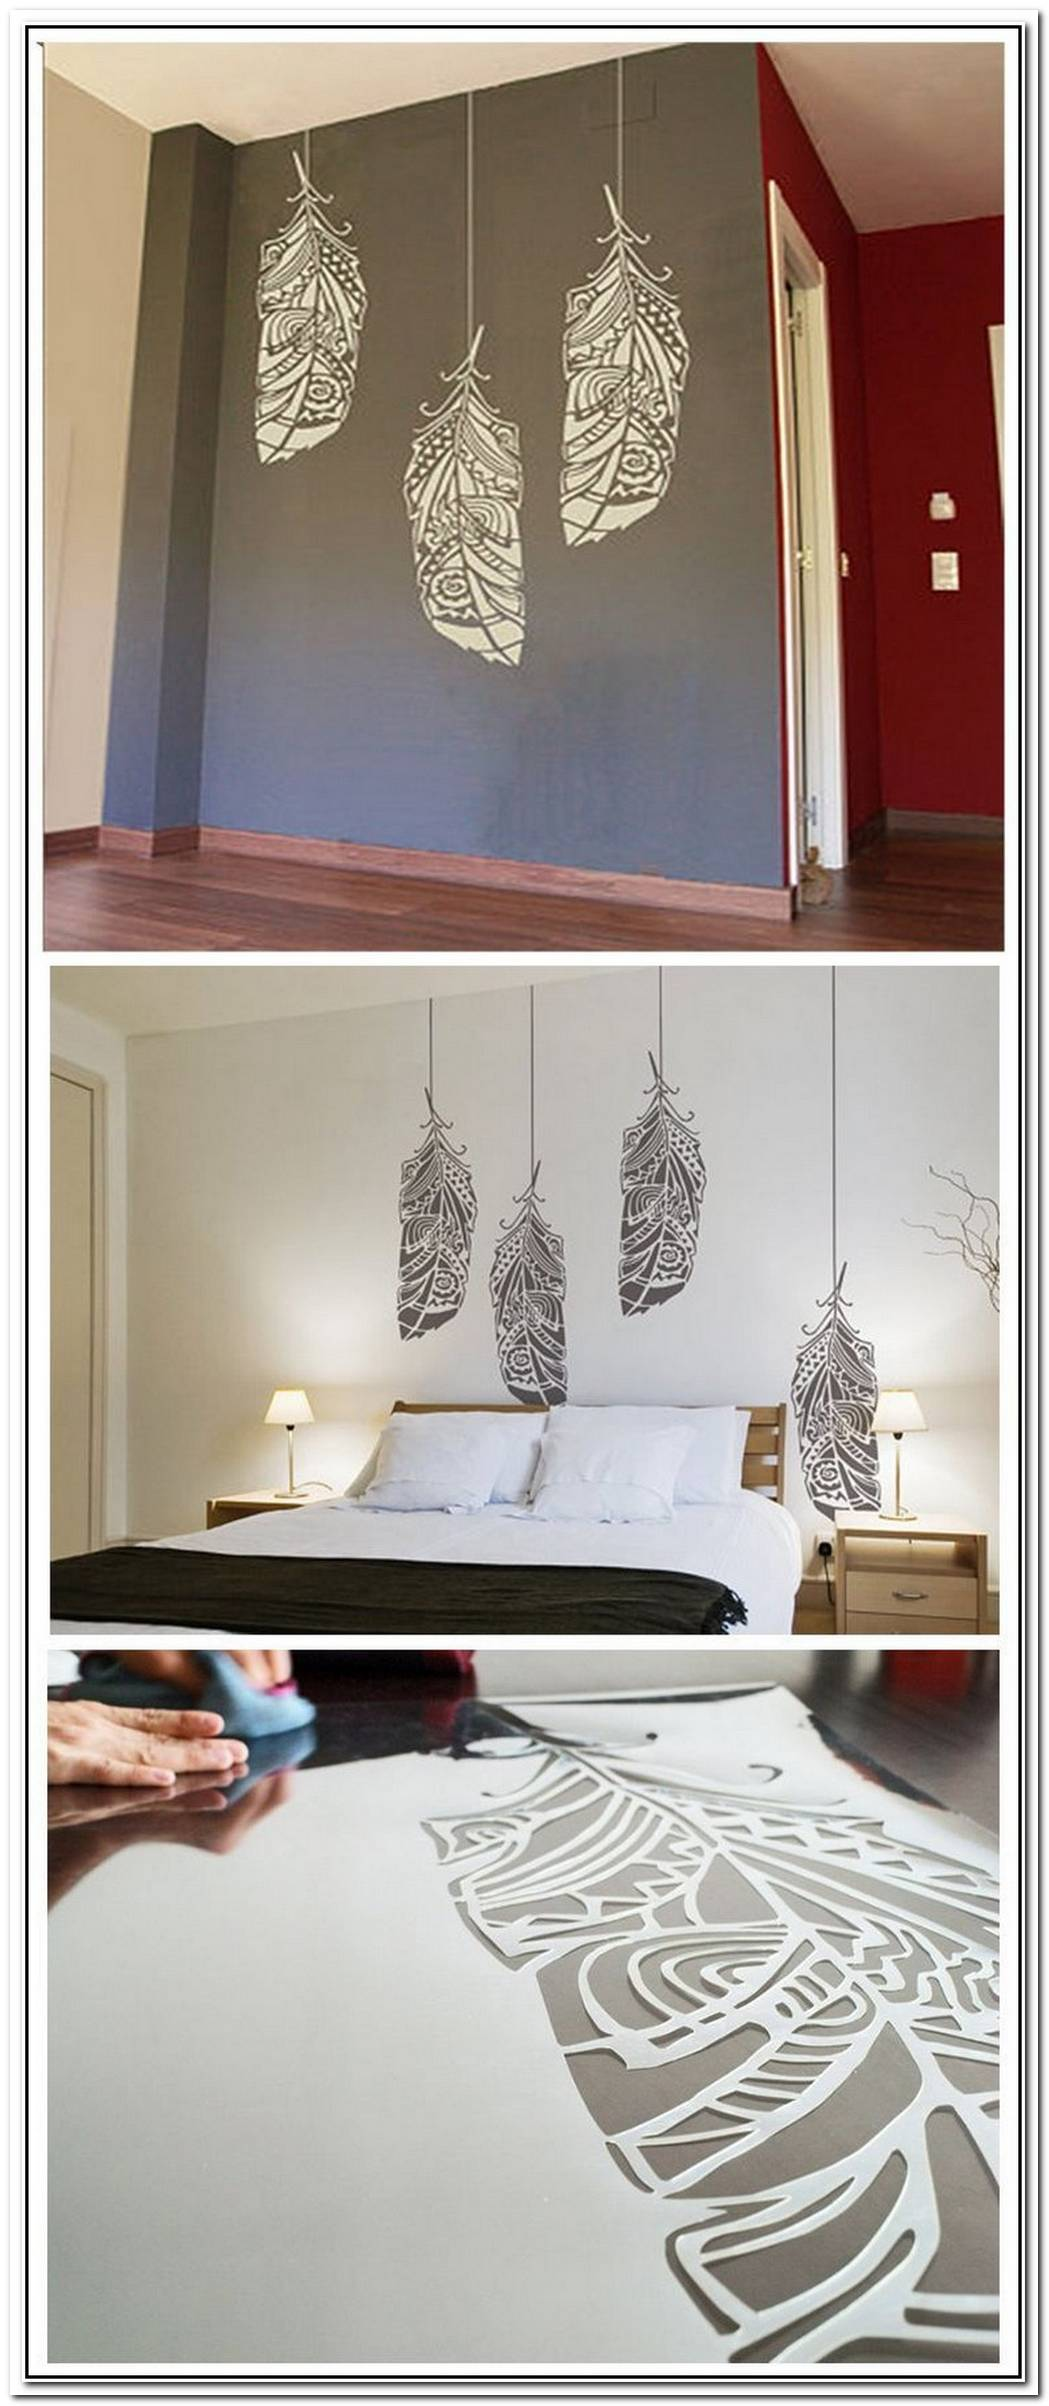 12 Awesome Wall Art Ideas To Make Your Home More Interesting